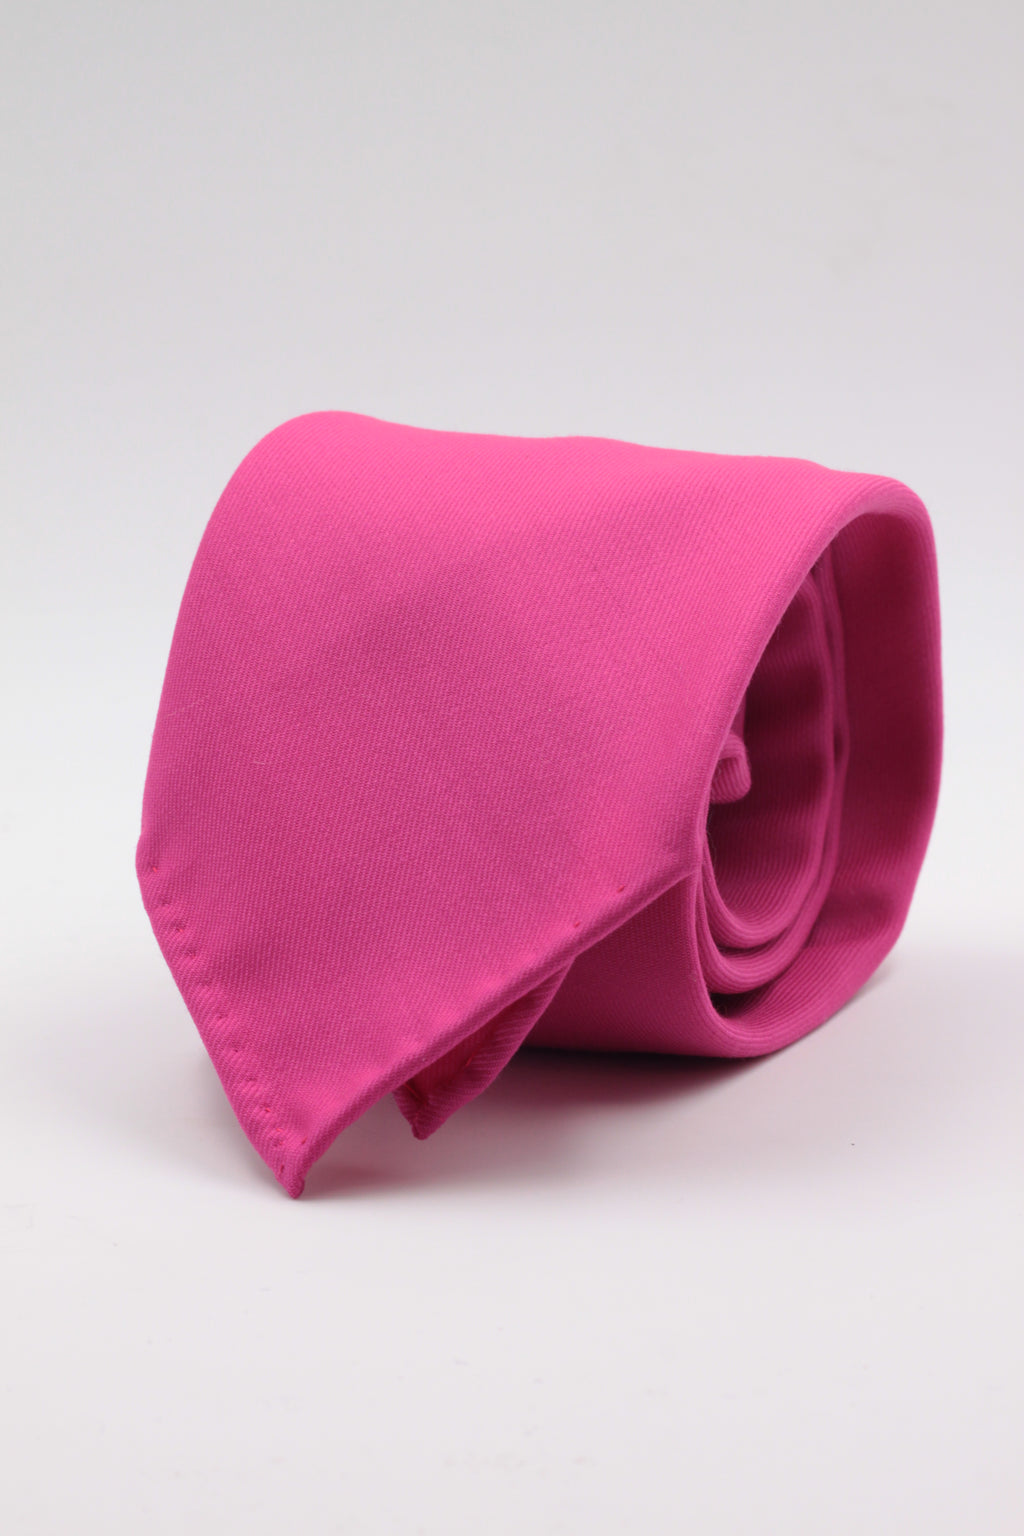 100% Super 140's Worsted Wool Gabardine 9 oz Unlined Hand rolled blades Electric  pink tie Handmade in Rome, Italy 8 cm x 150 cm